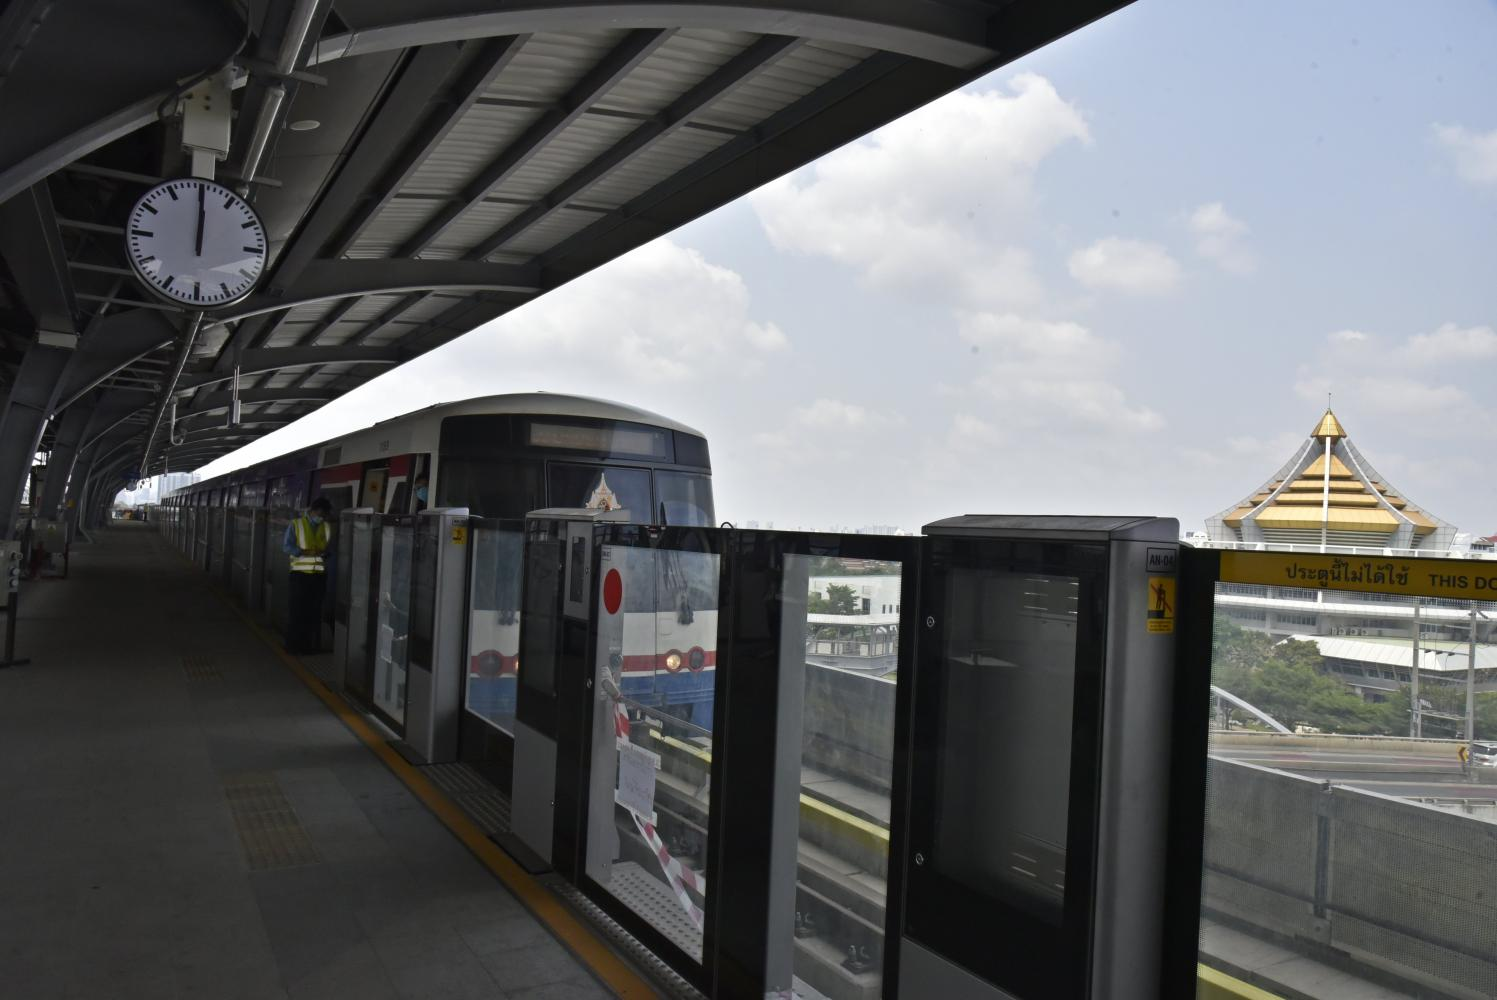 Bangkok Mass Transit System Plc inaugurates a test run of the Green Line from Kasetsart University to Wat Phra Sri Mahathat station in early April 2020.